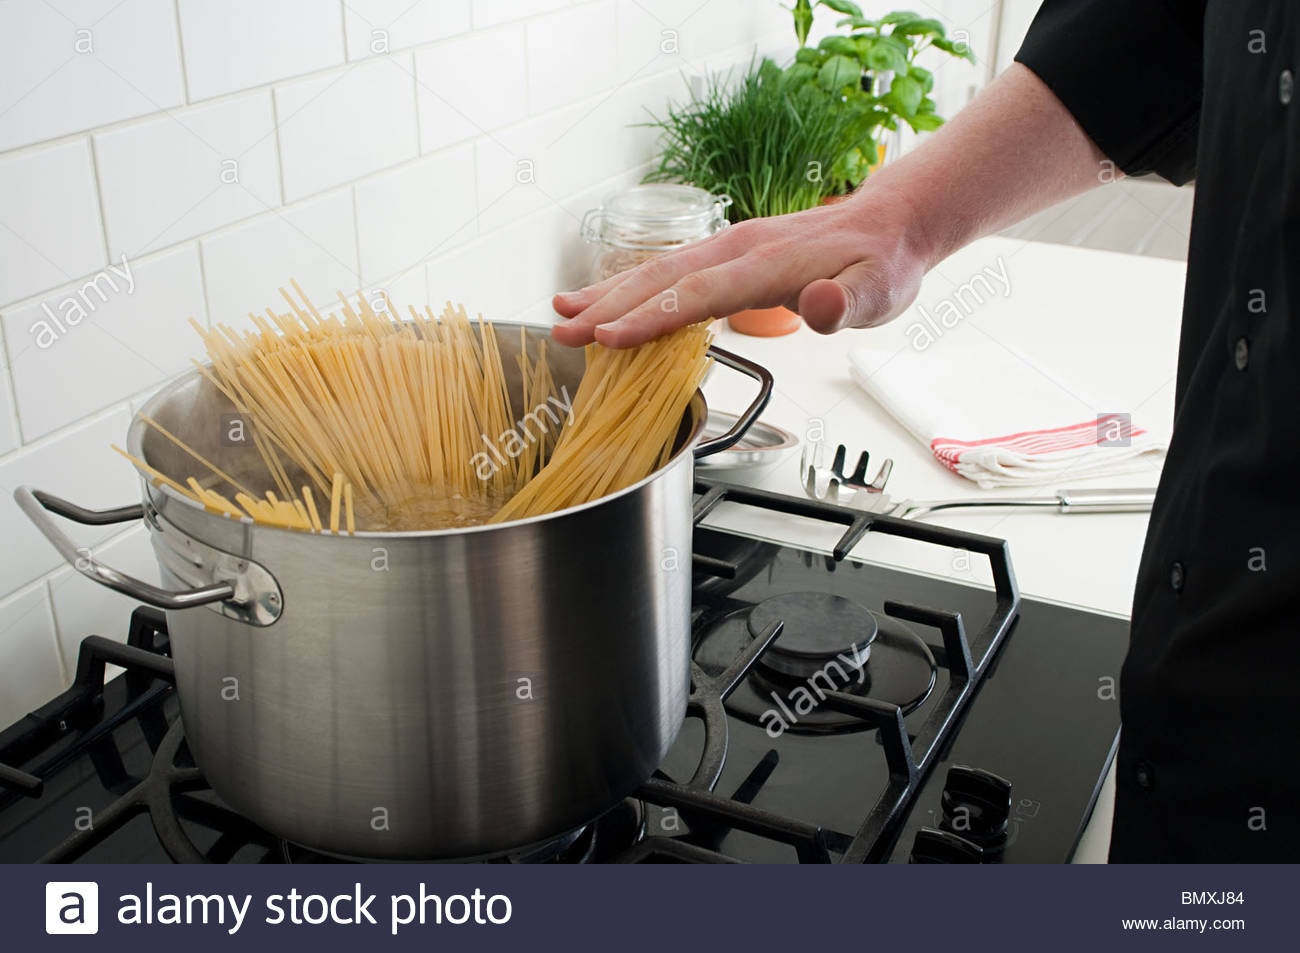 Cooking spaghetti - Stock Image